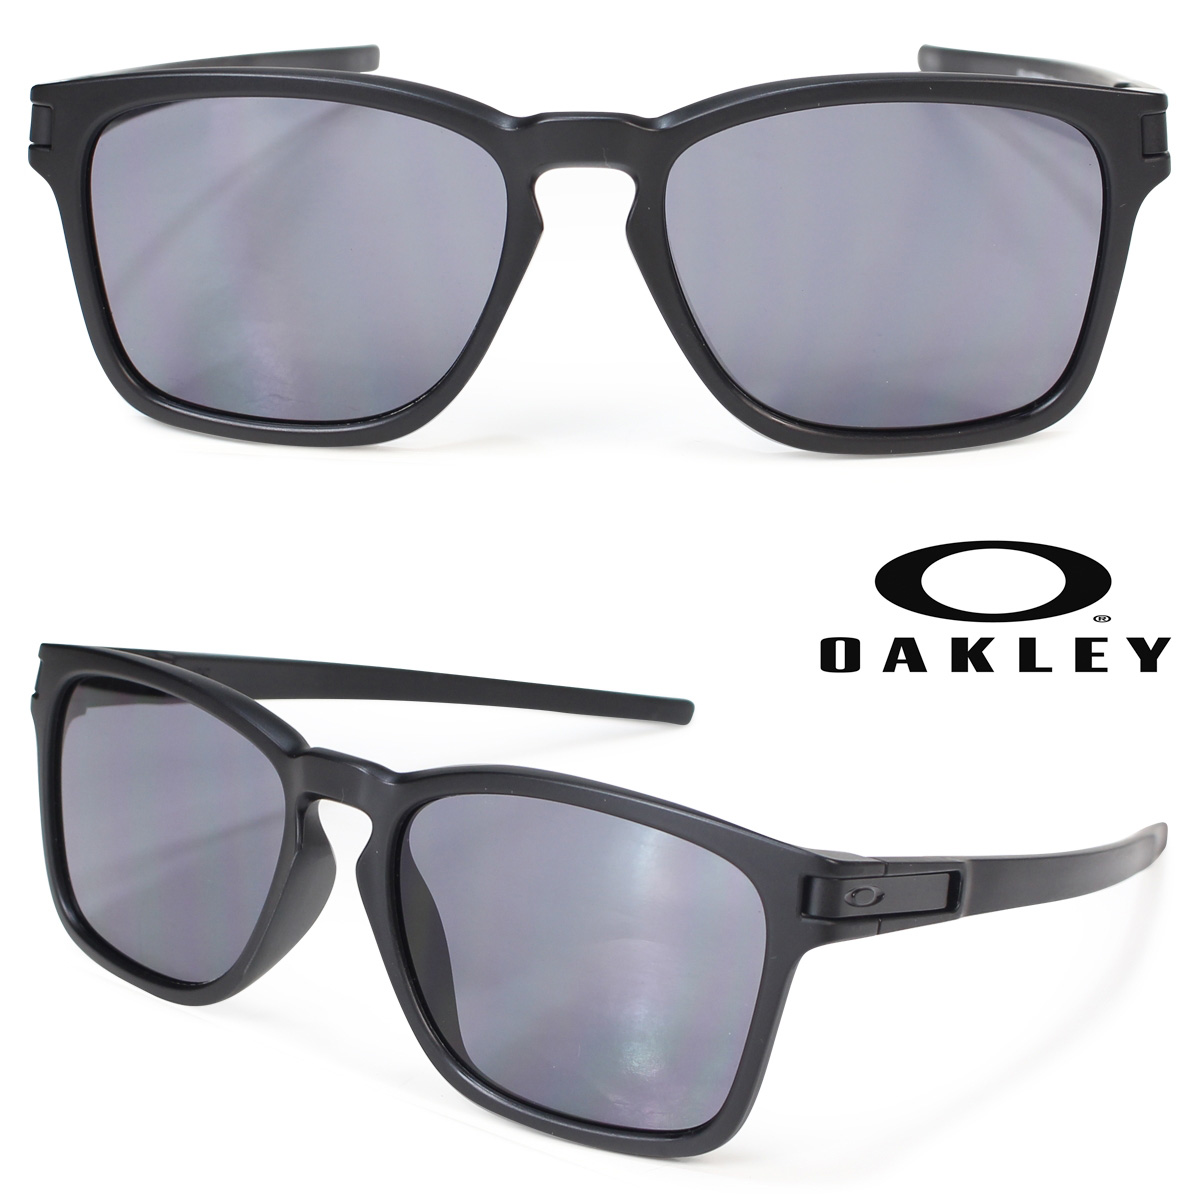 a6823abdae ... new zealand oakley sunglasses latch horse mackerel ann fitting oakley  latch square asia fit oo9358 01